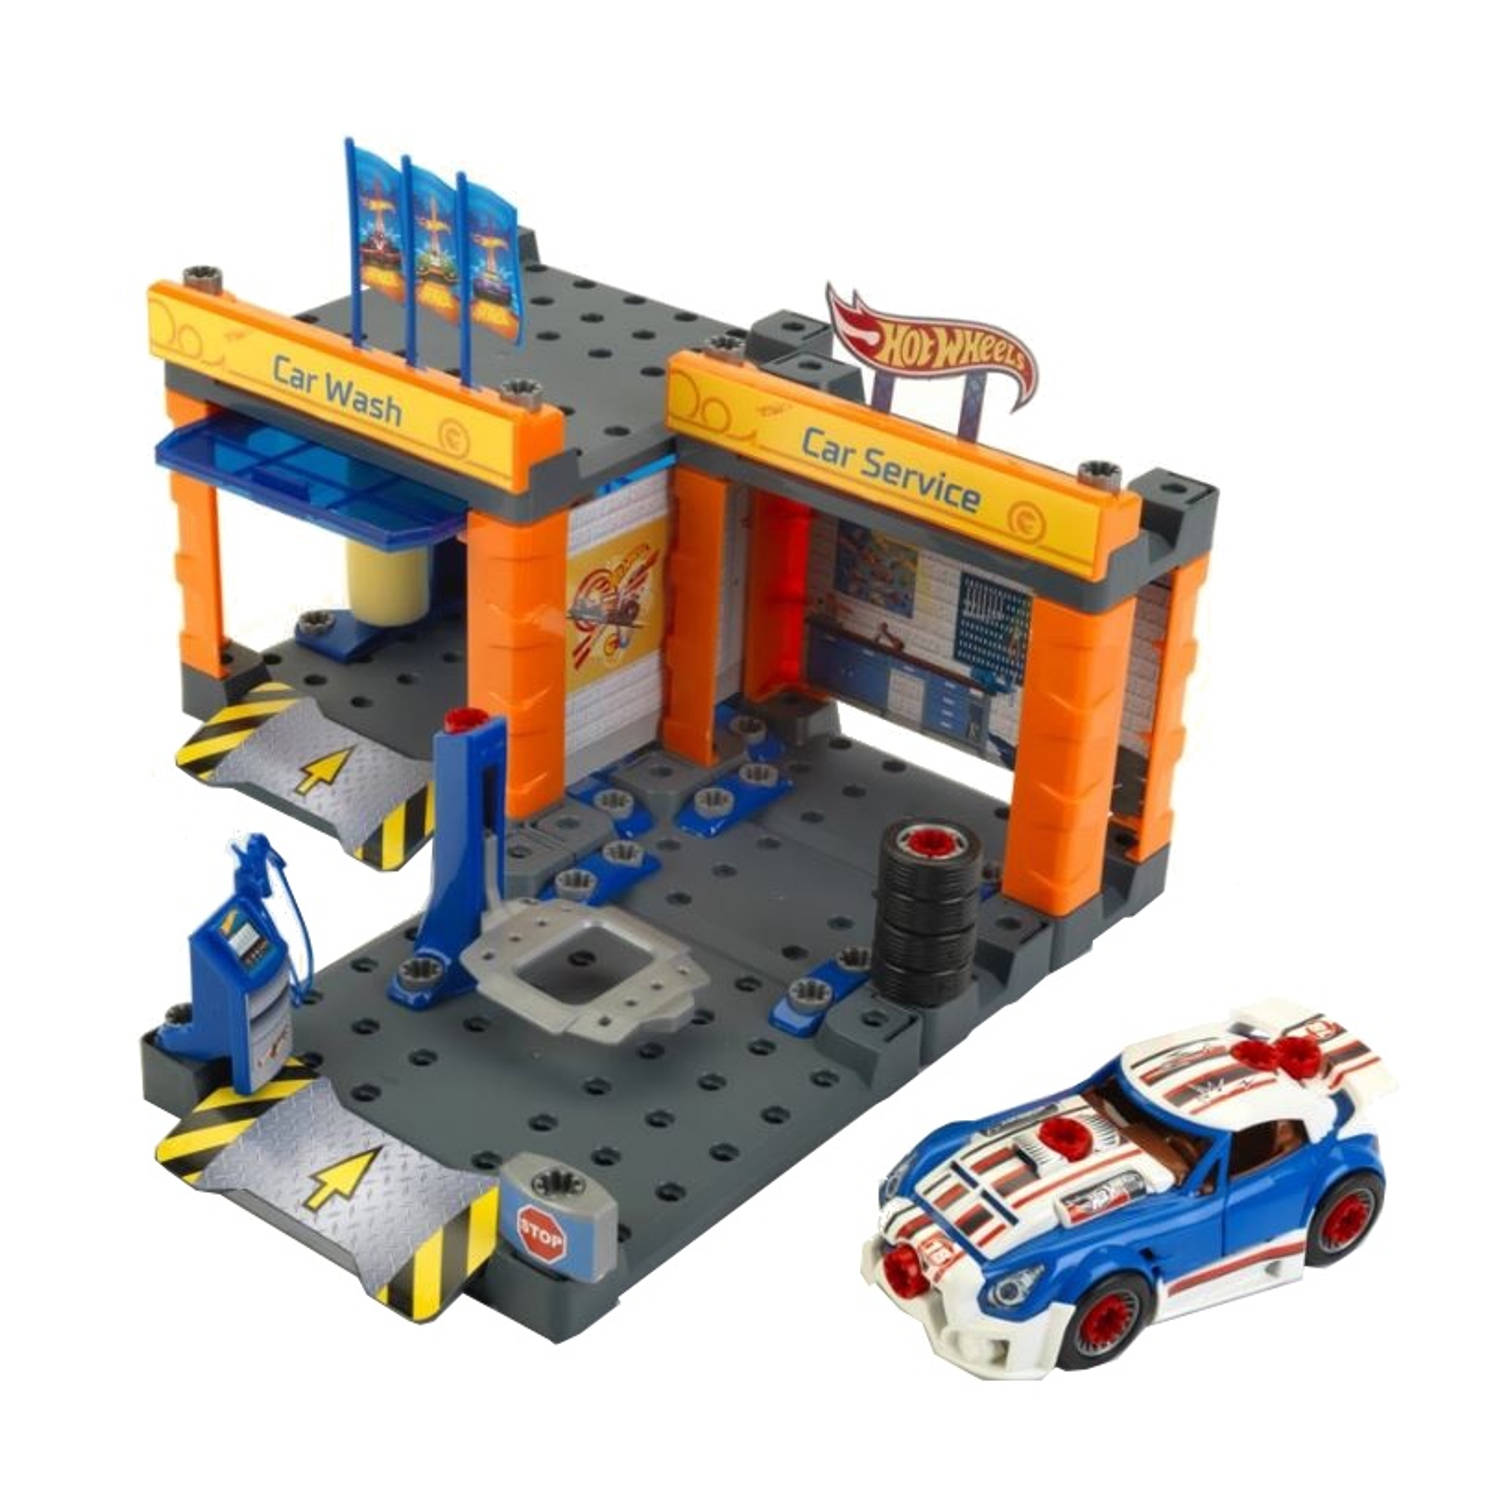 Klein hot wheels garage en carwash 30 x 40 cm